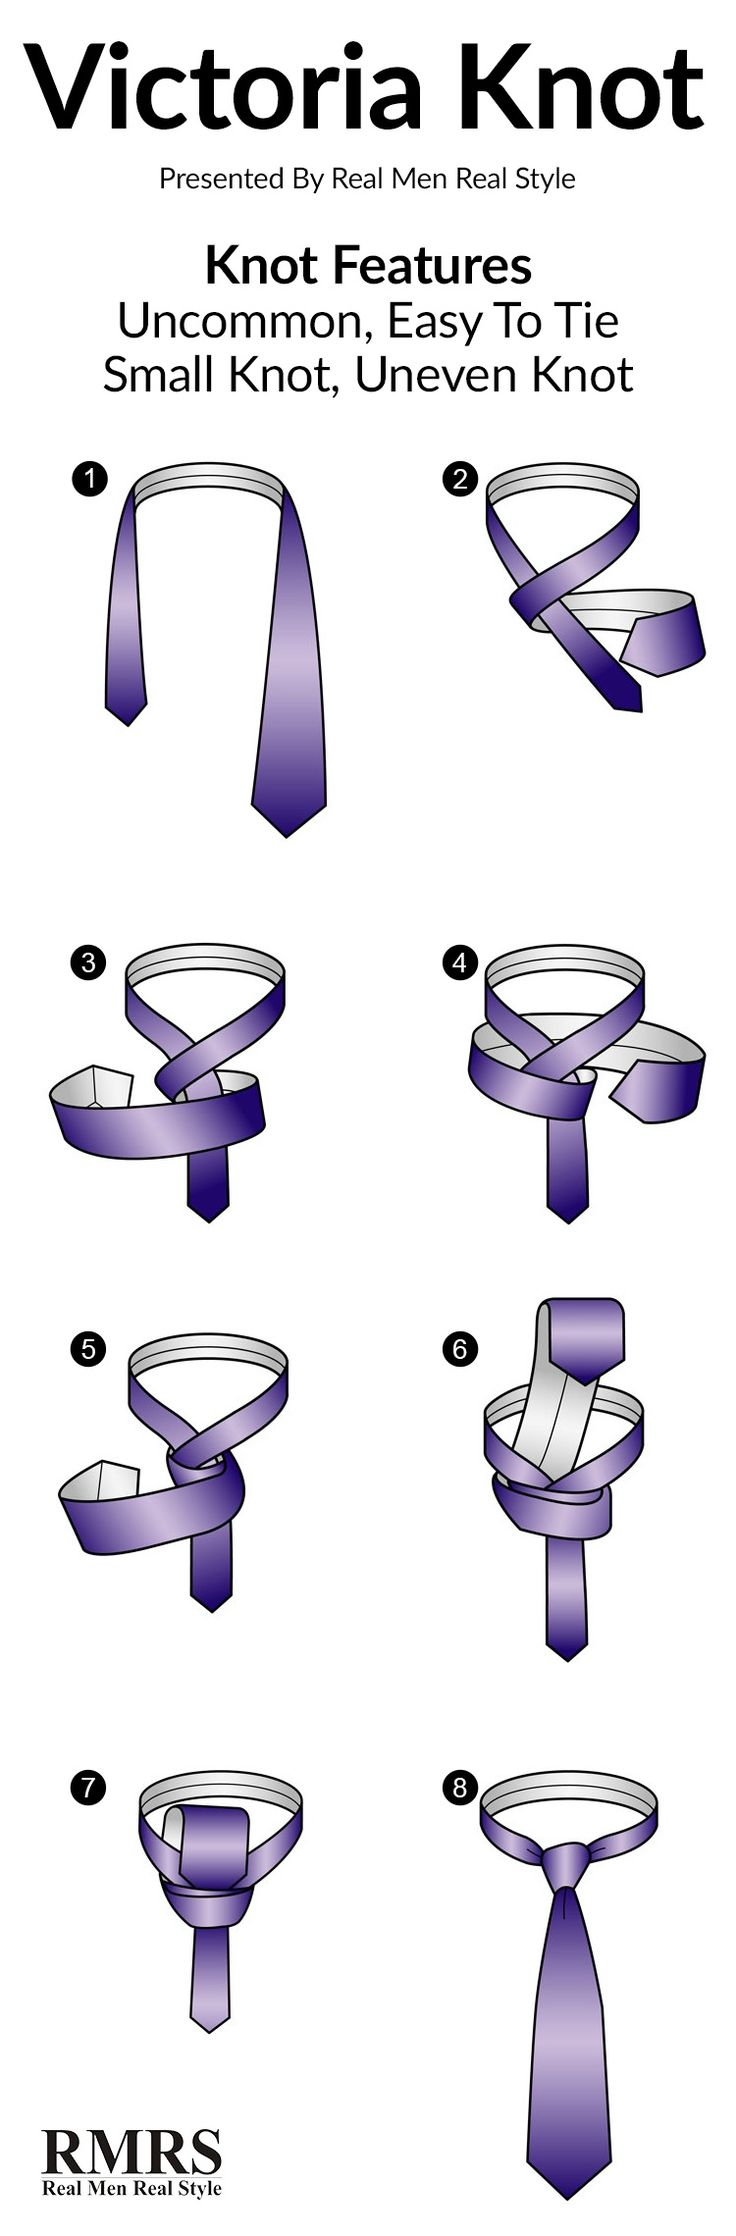 10 Unusual Ways To Tie A Necktie | Best Tie Knots Every Man Should Know